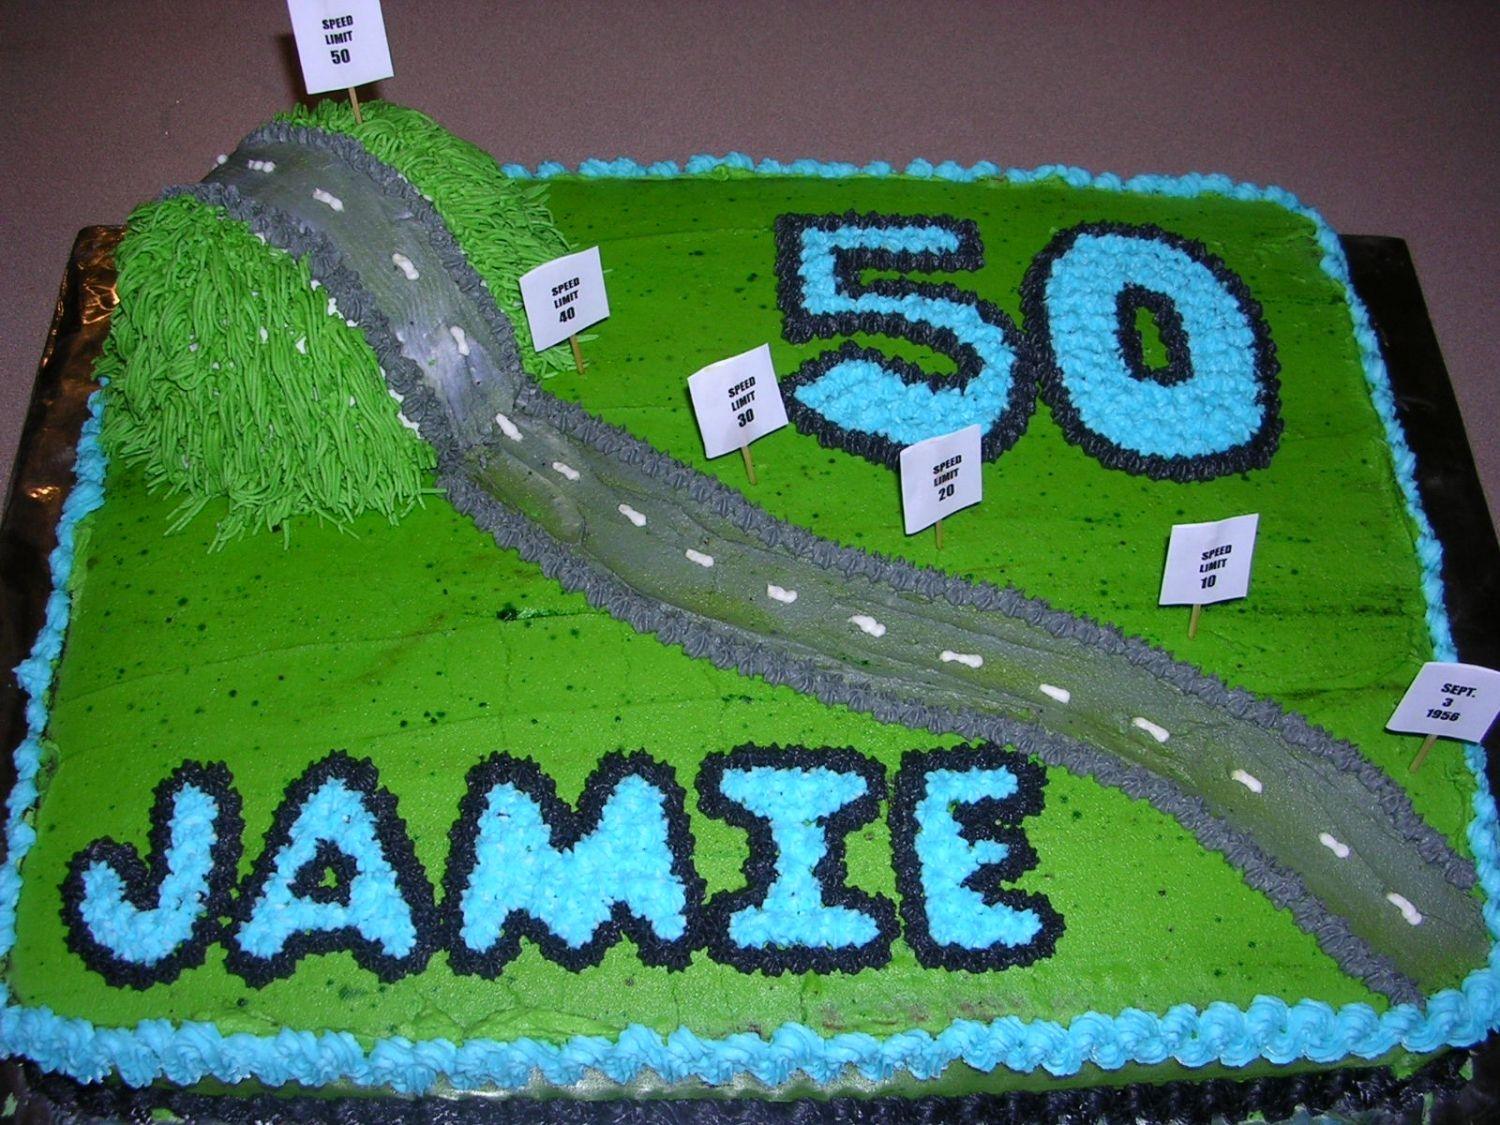 Down A Long Road And Over The Hill I designed this cake for my stepmother's 50th birthday party. The little signs are speed limit signs going from 0 to 50.